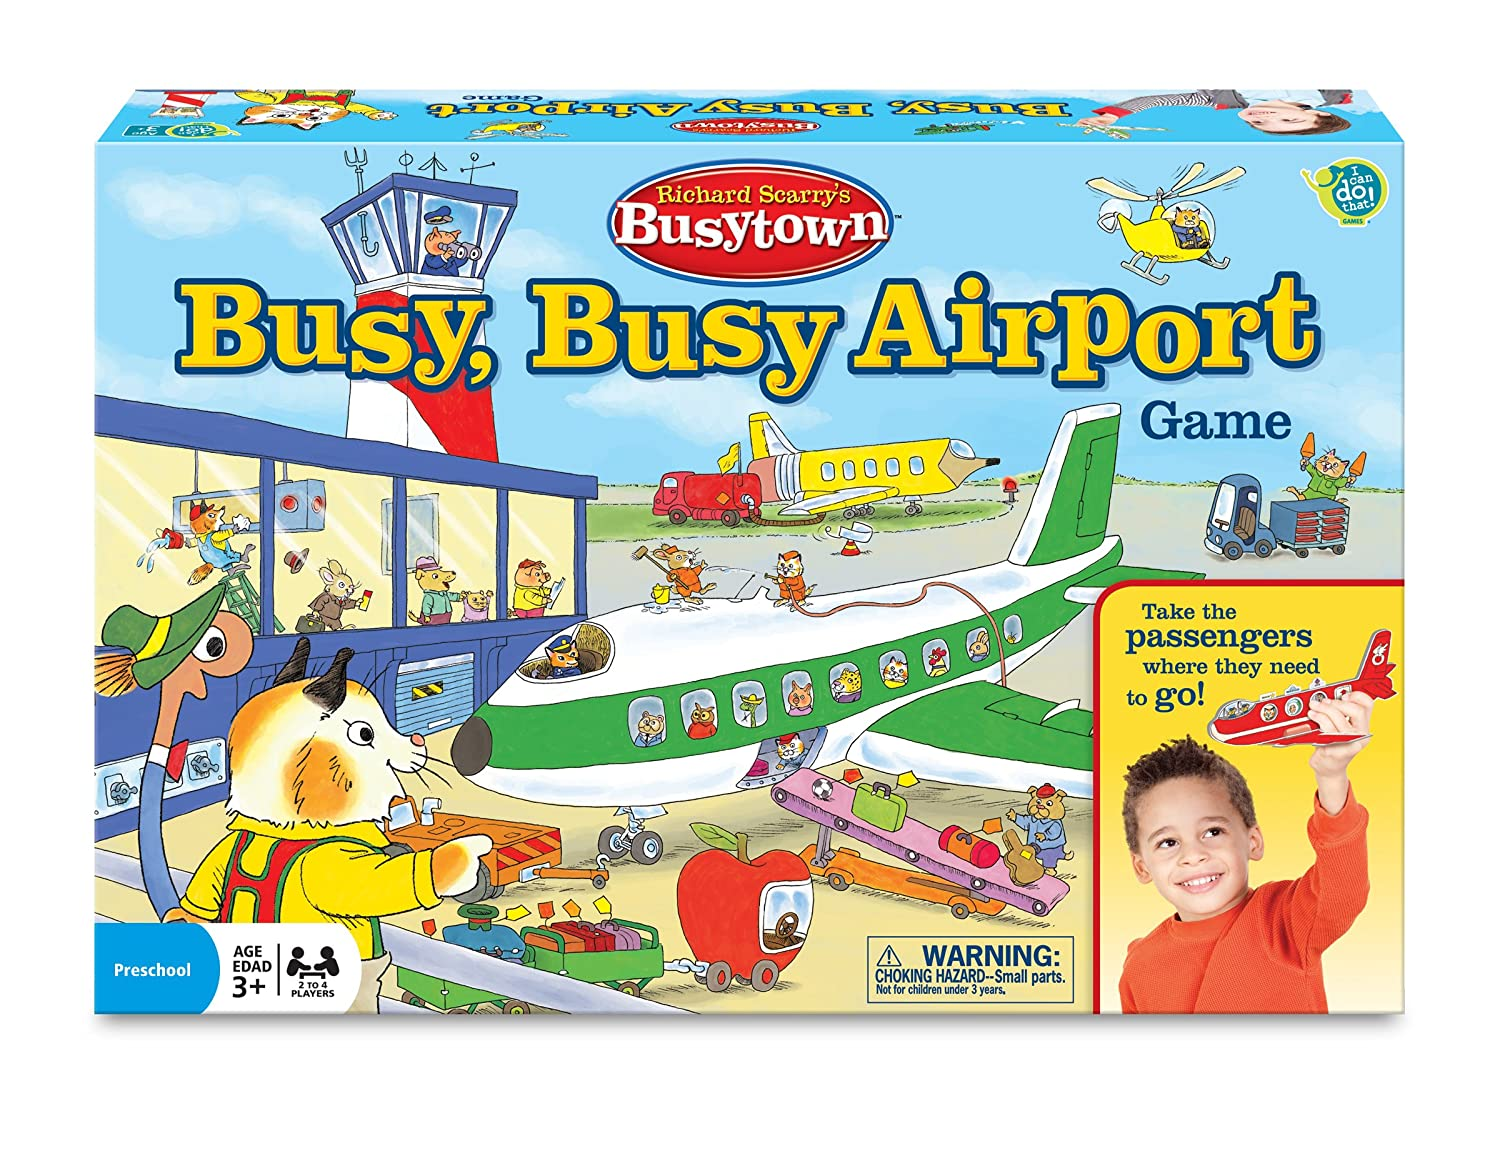 Busytown Airport game for preschoolers